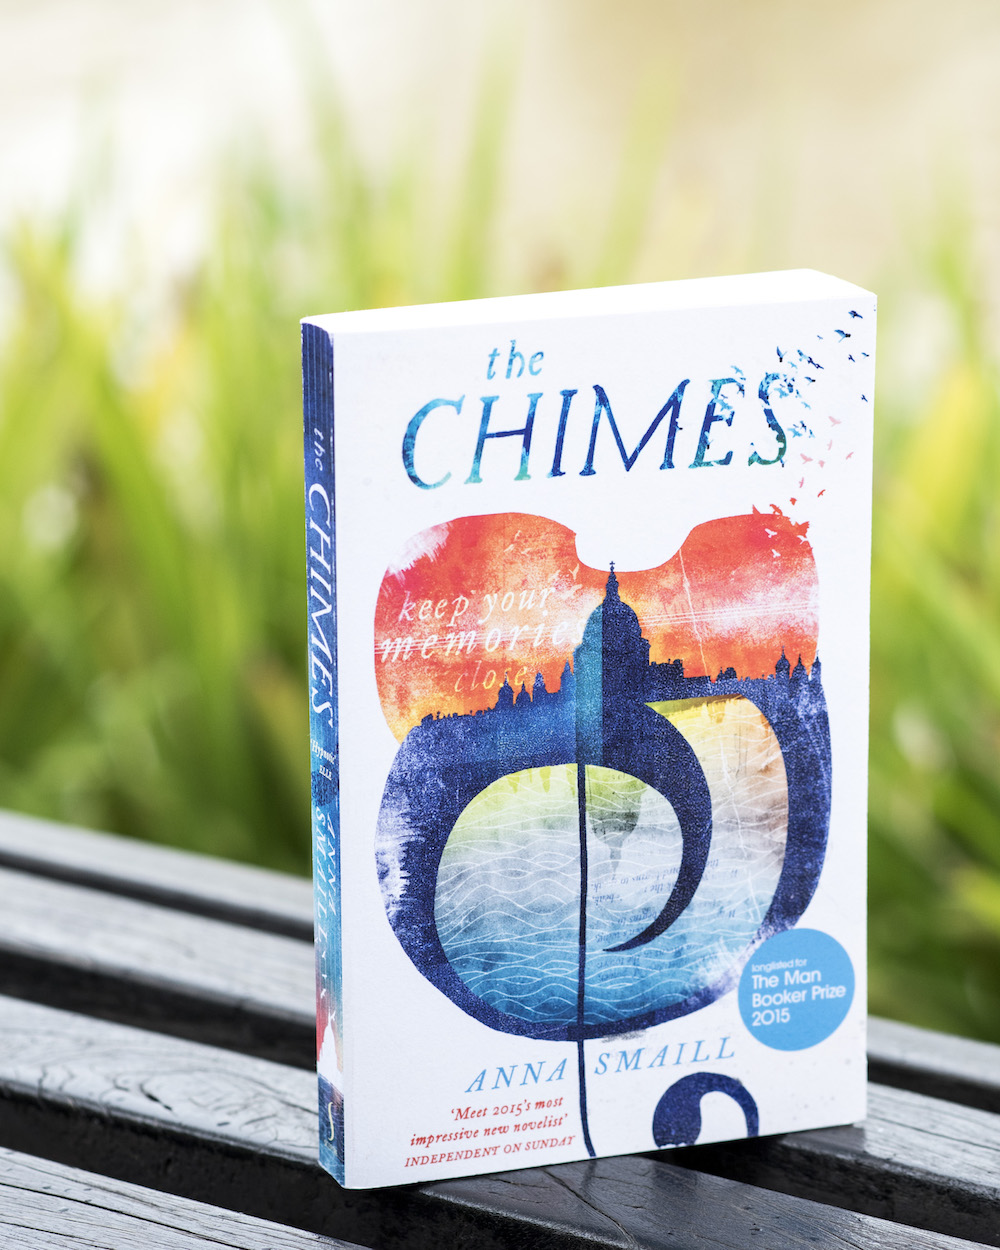 Bookish Scene: Project 52 – Nature (The Chimes by Anna Smaill)